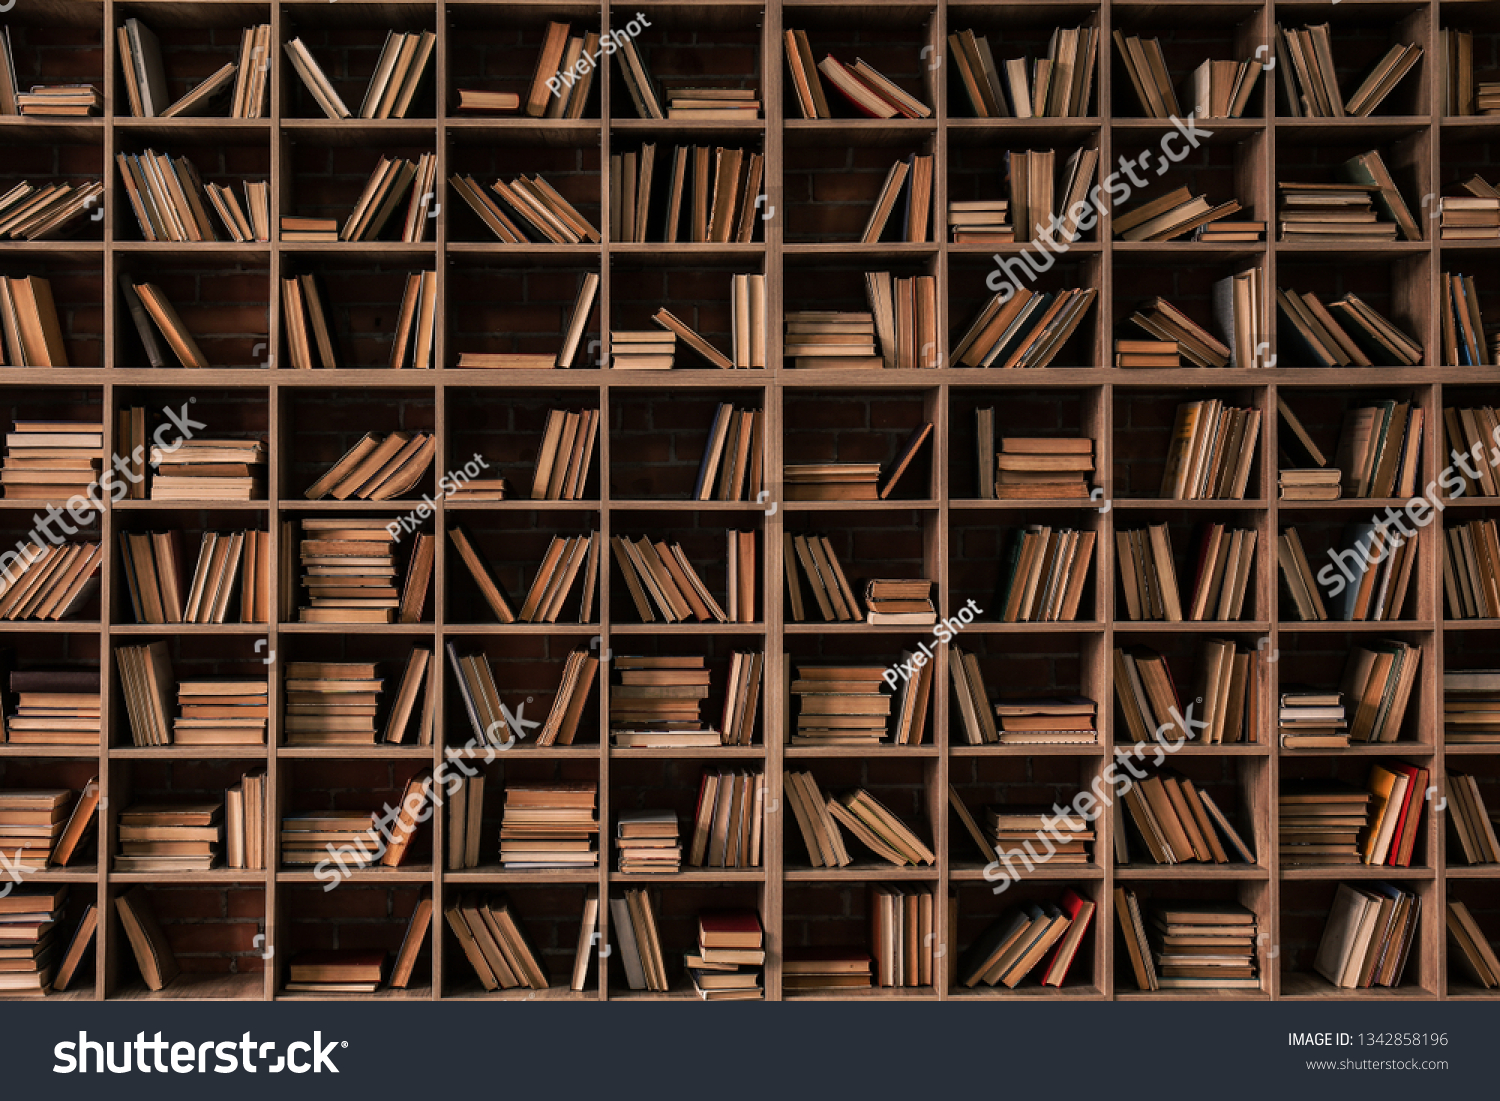 Books On Shelves Library Stock Photo (edit Now) 1342858196